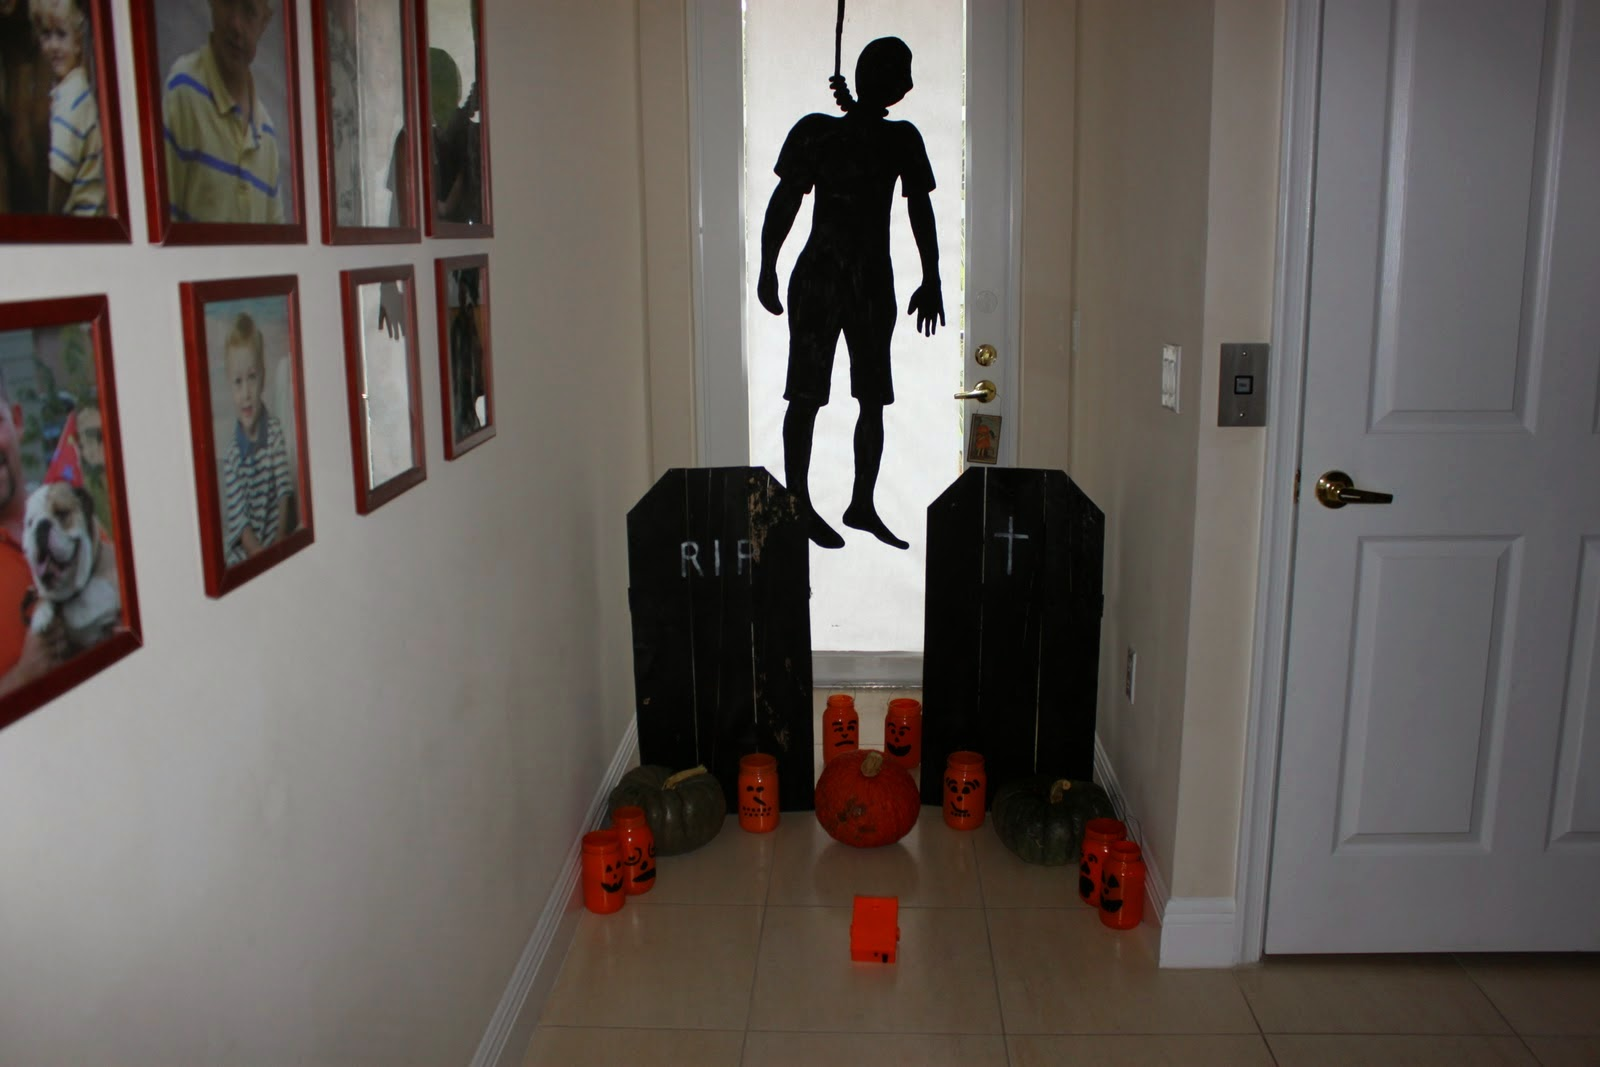 Drawn tombstone halloween decoration Wishes Stuff Halloween Day Scary